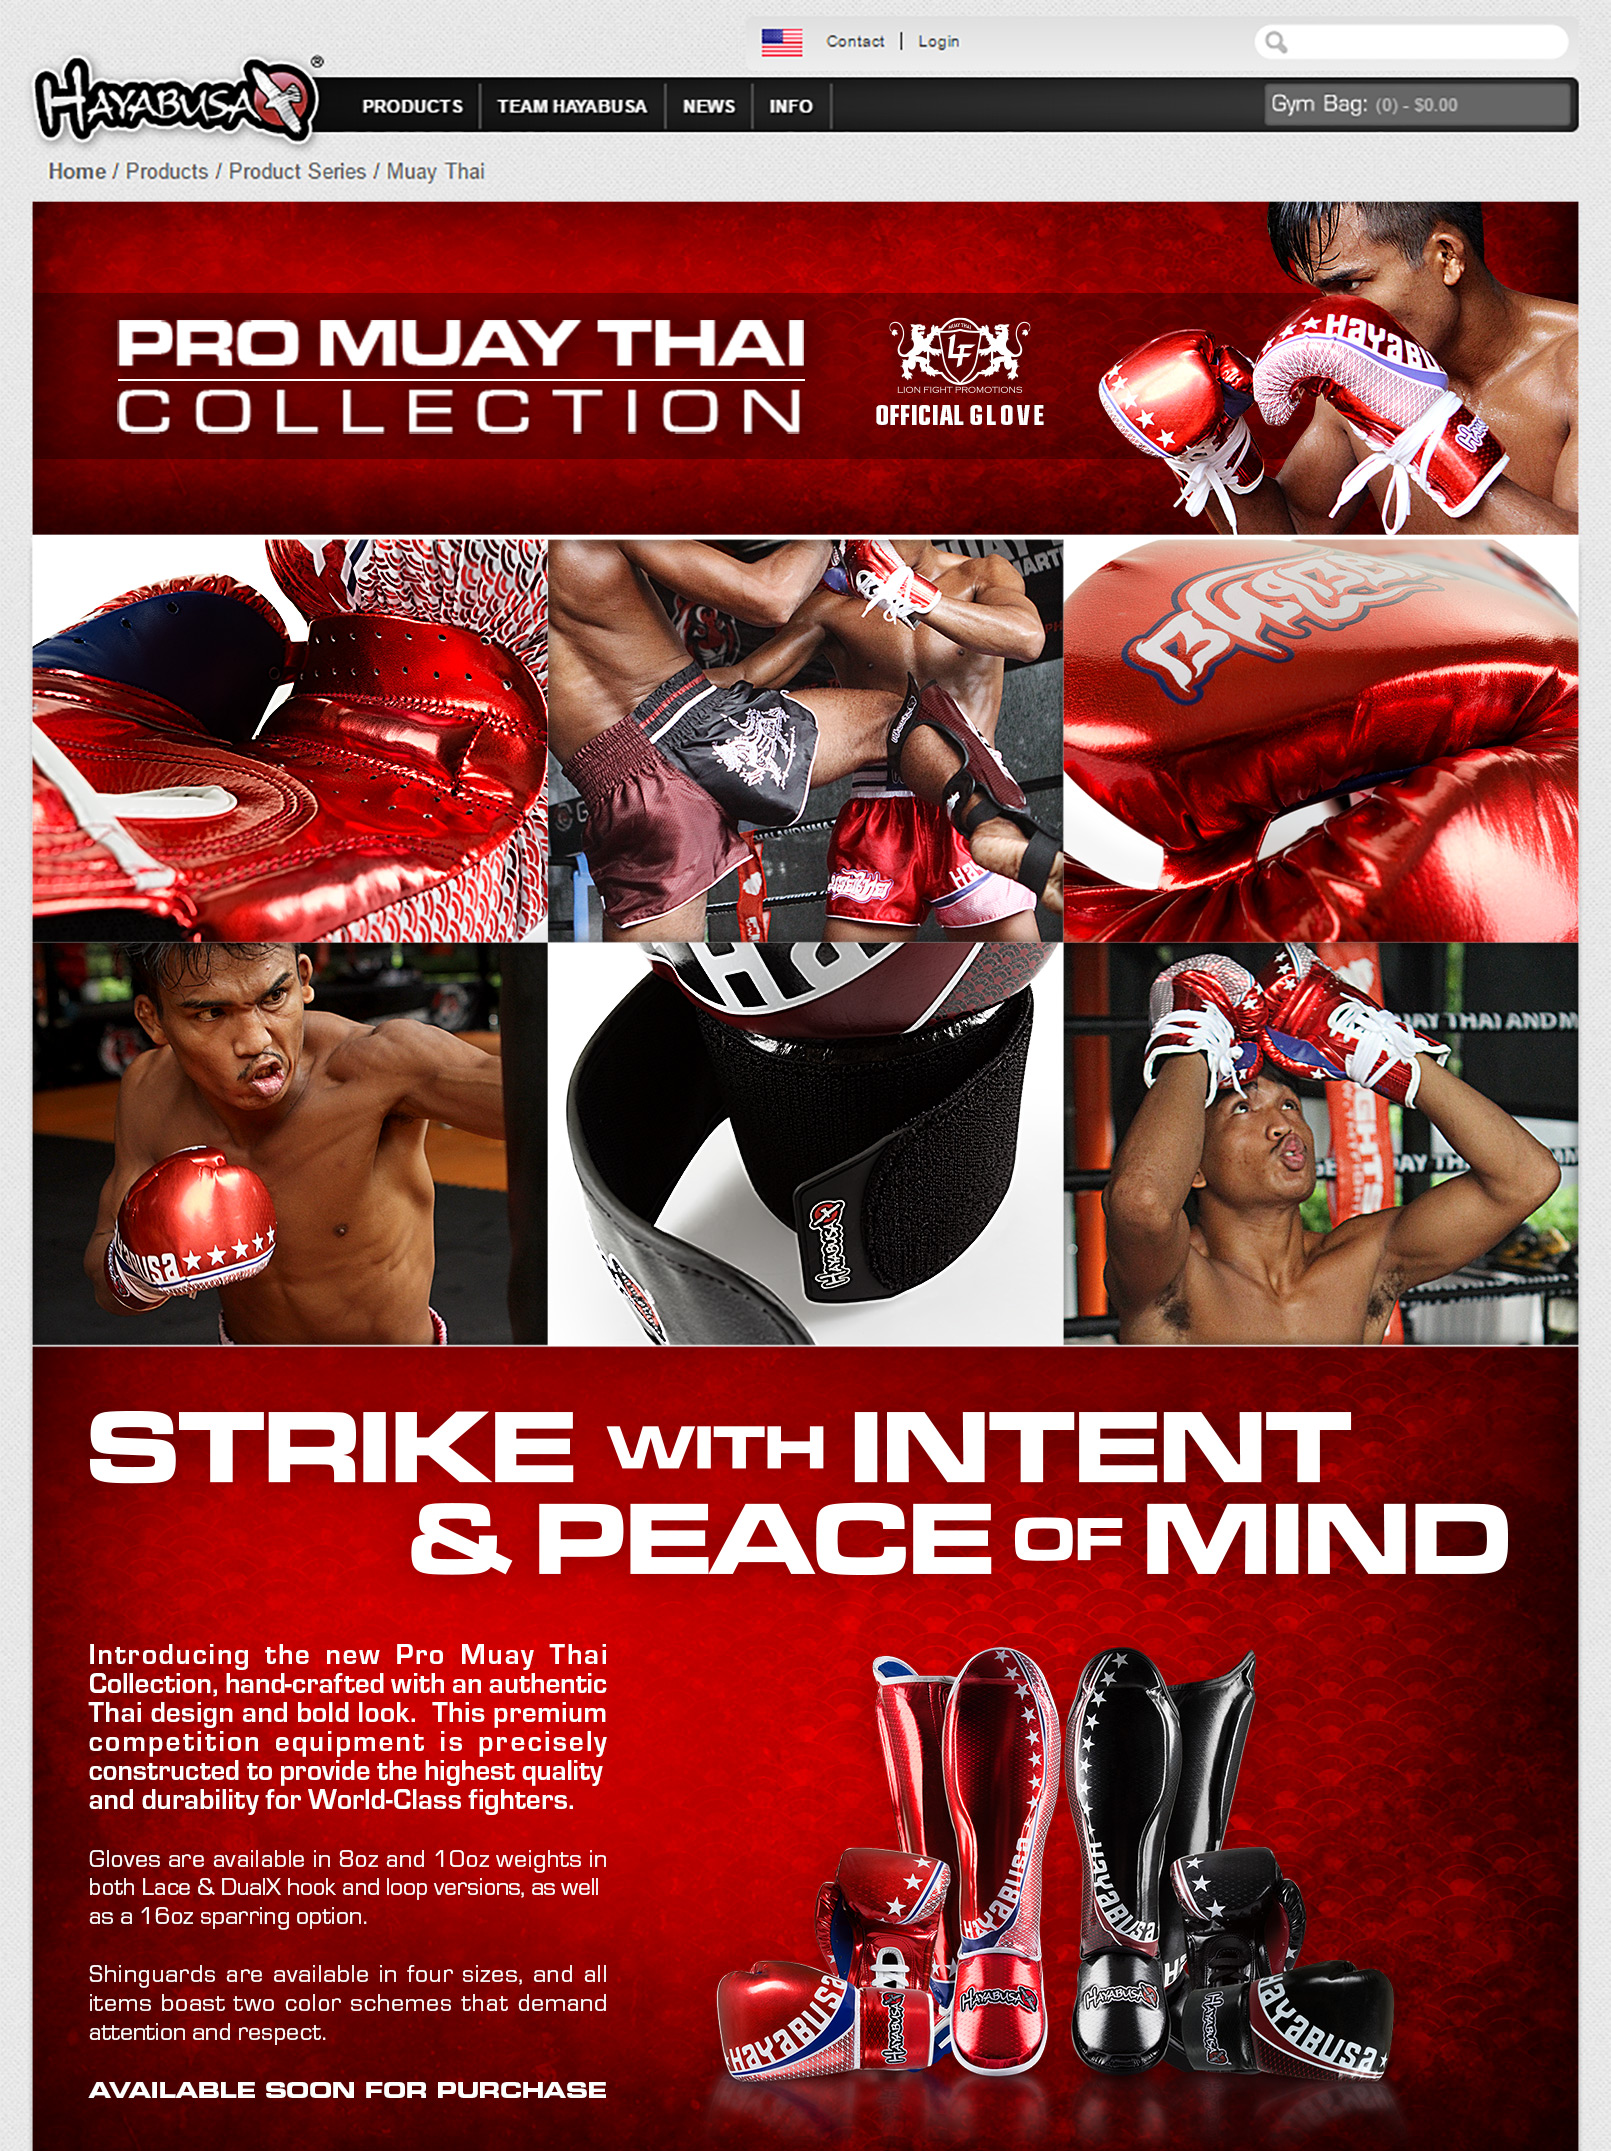 Pro Muay Thai - Product Page - old website